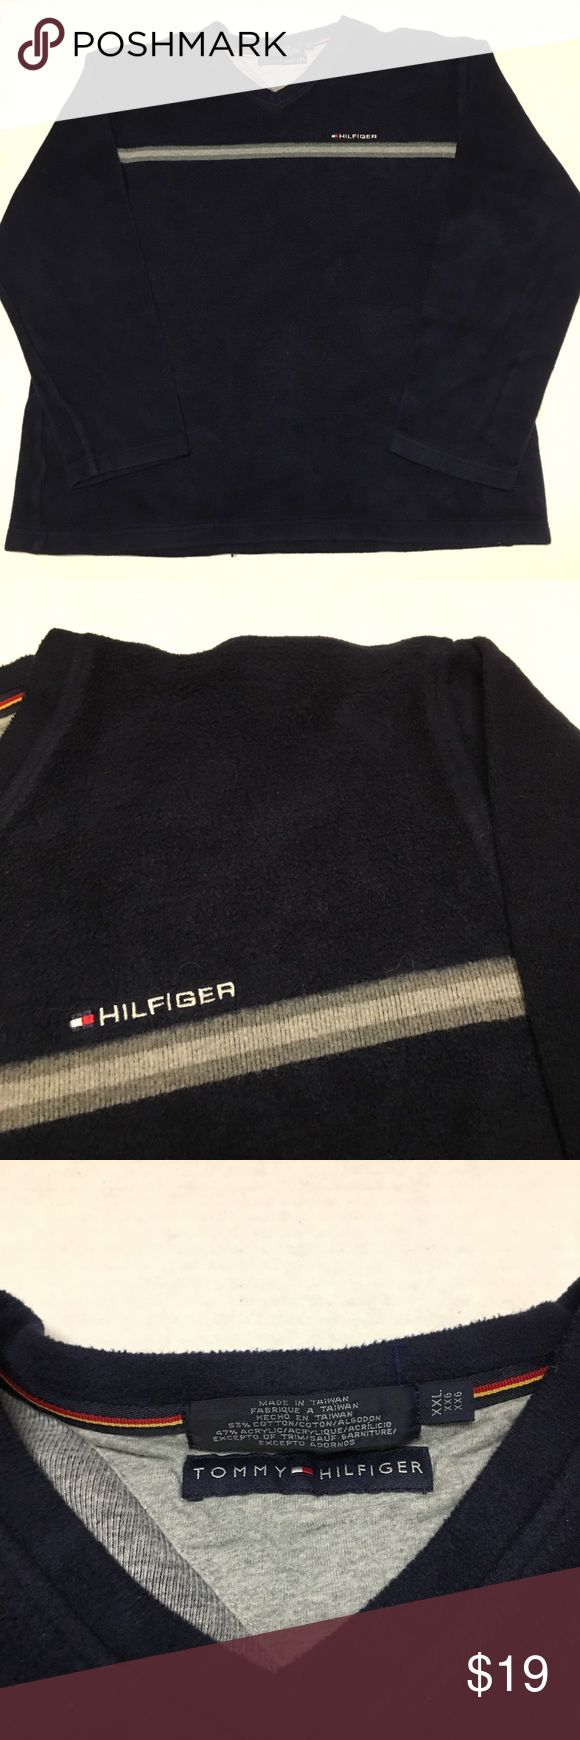 Tommy Hilfiger spell out Flag Logo fleece pullover Fits more like xl but tagged as xxl. This Striped sweatshirt gives off a great vintage vibe and is super comfortable and has no flaws Tommy Hilfiger Shirts Sweatshirts & Hoodies